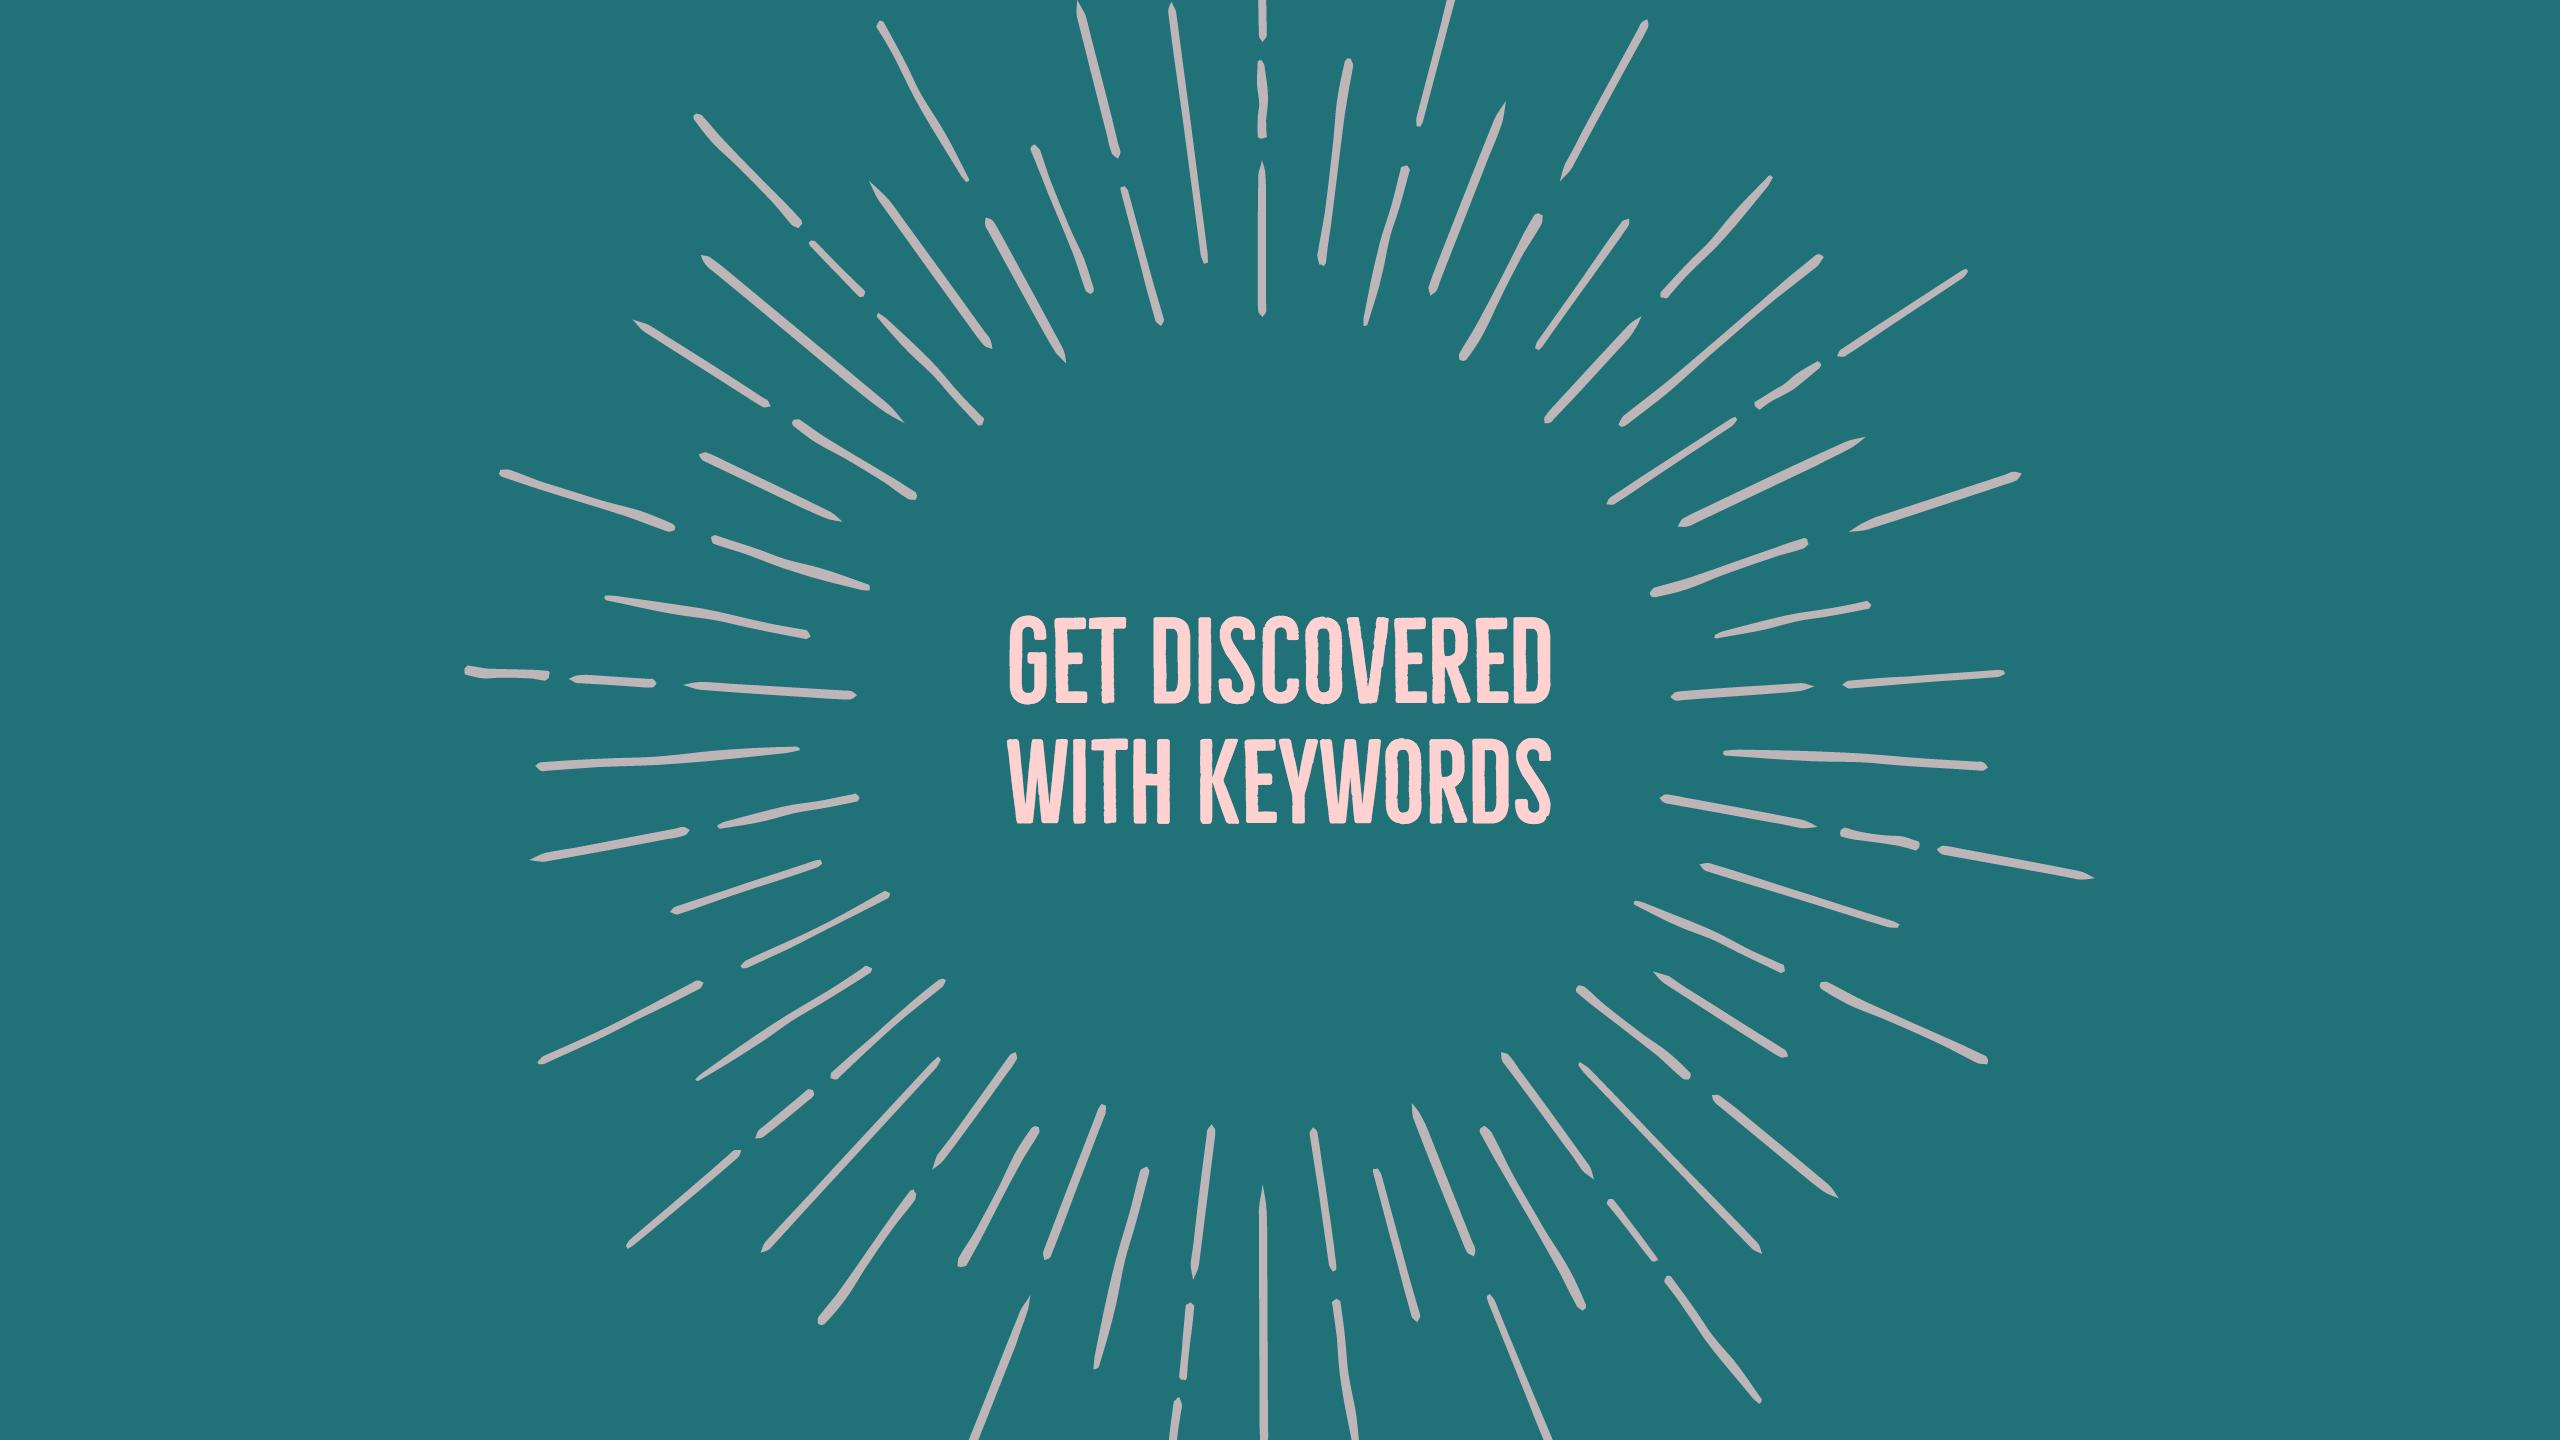 Get Your Videos Discovered with Keywords